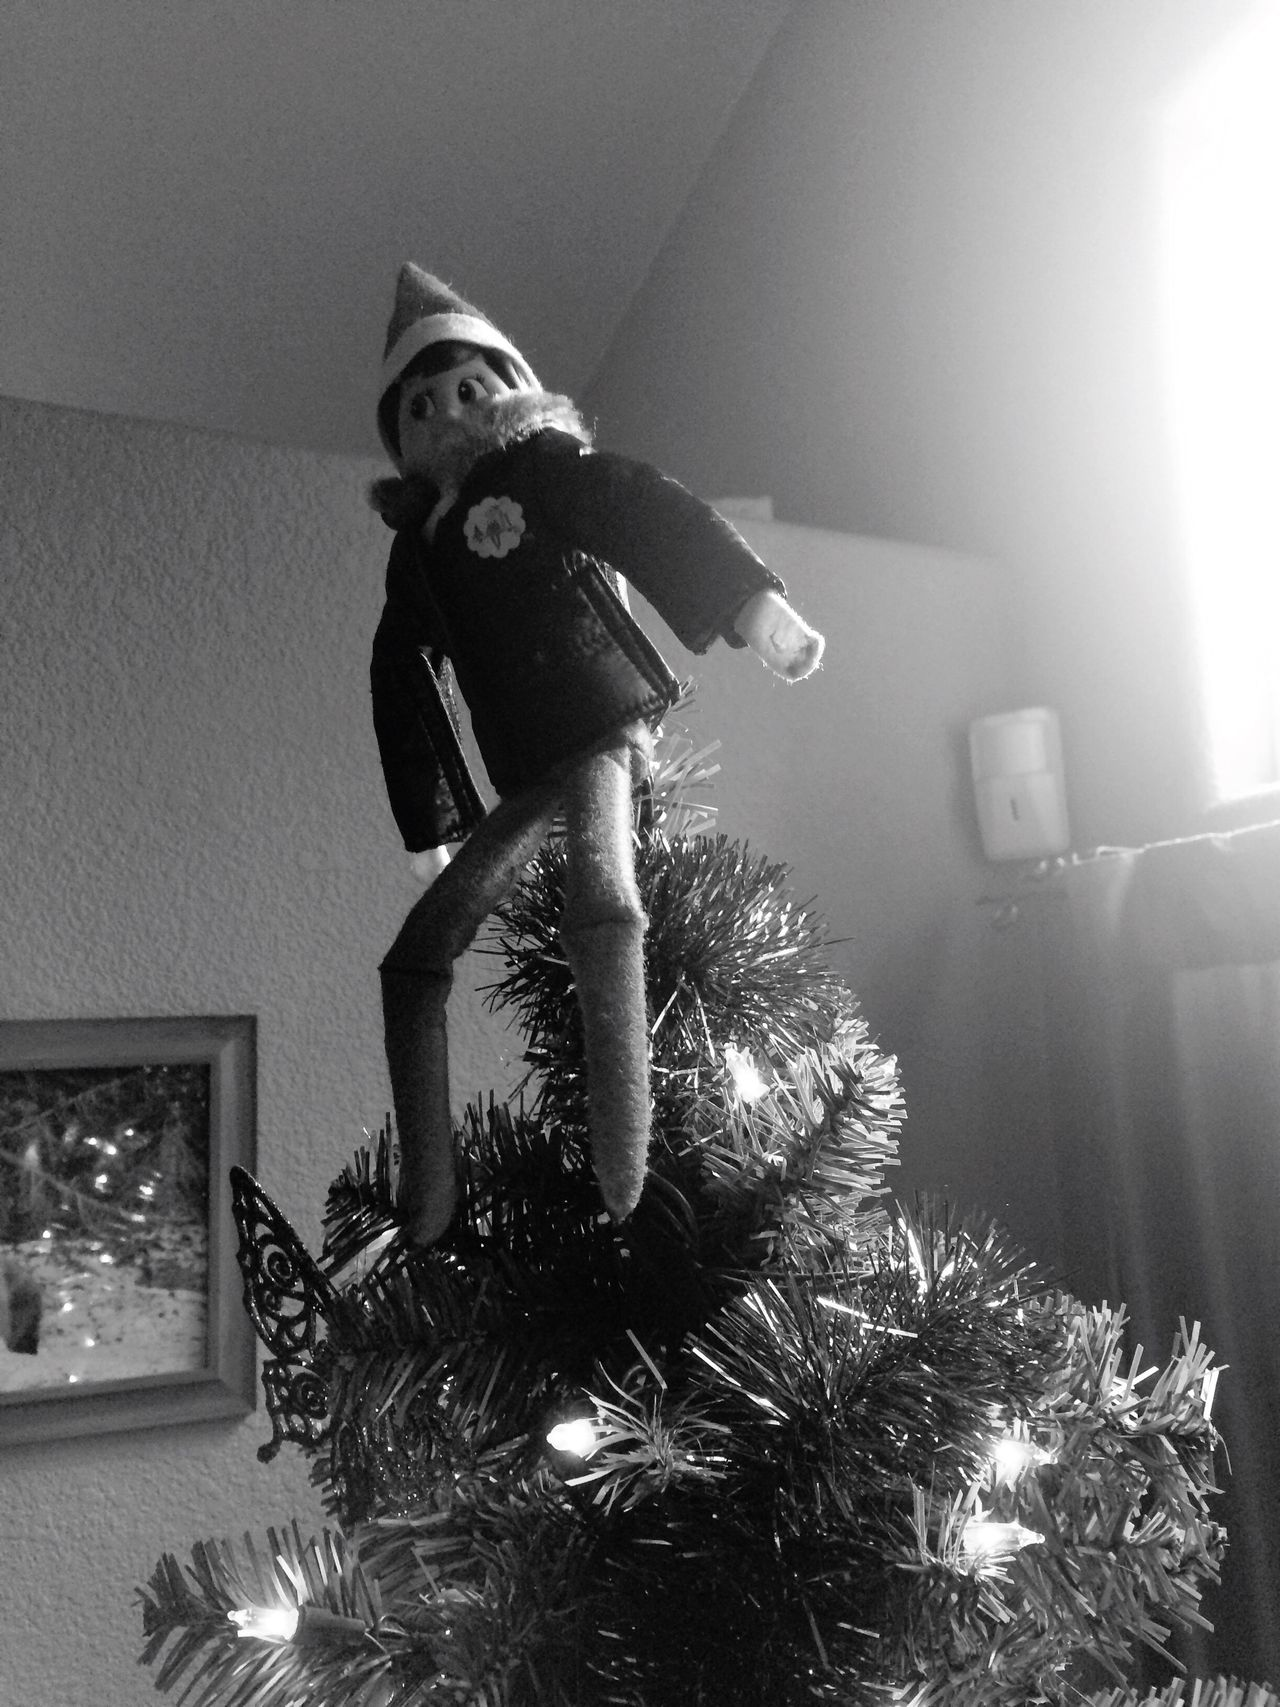 Elfontheshelf Full Length Indoors  One Person Celebration Childhood Christmas Real People People Day Christmas Tree Sunlight Blurring Black And White Elf